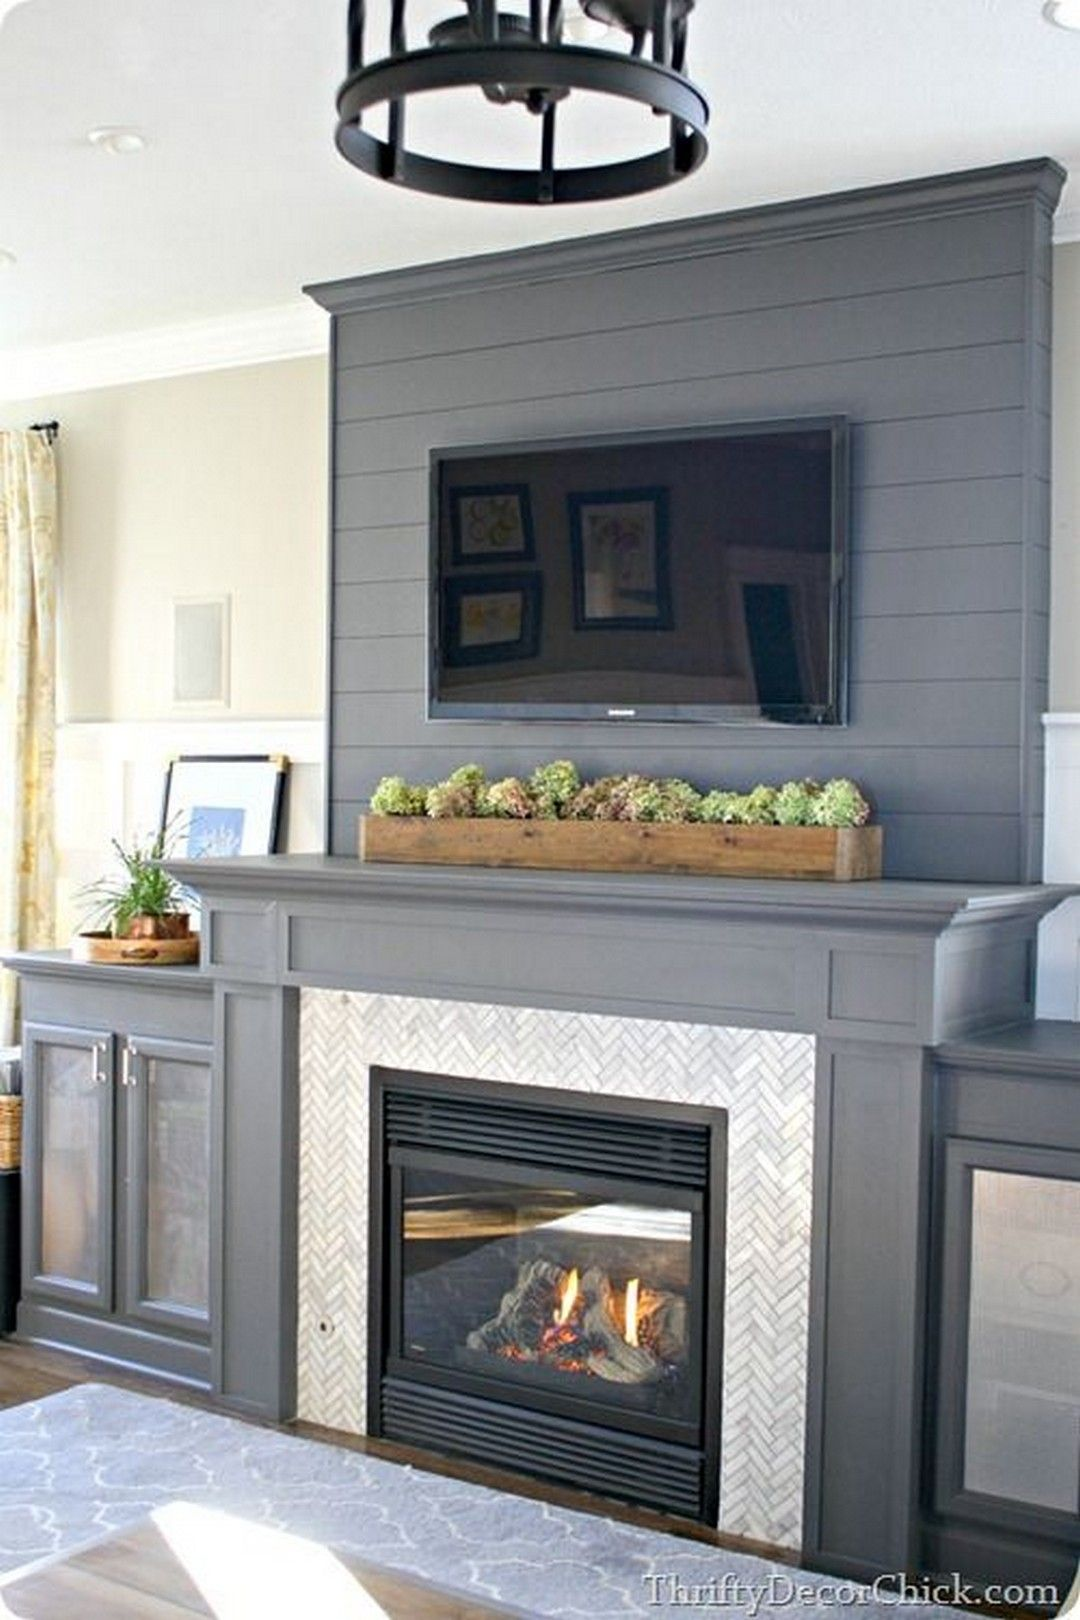 45 Awesome BuiltIn Cabinets Around Fireplace Design Ideas